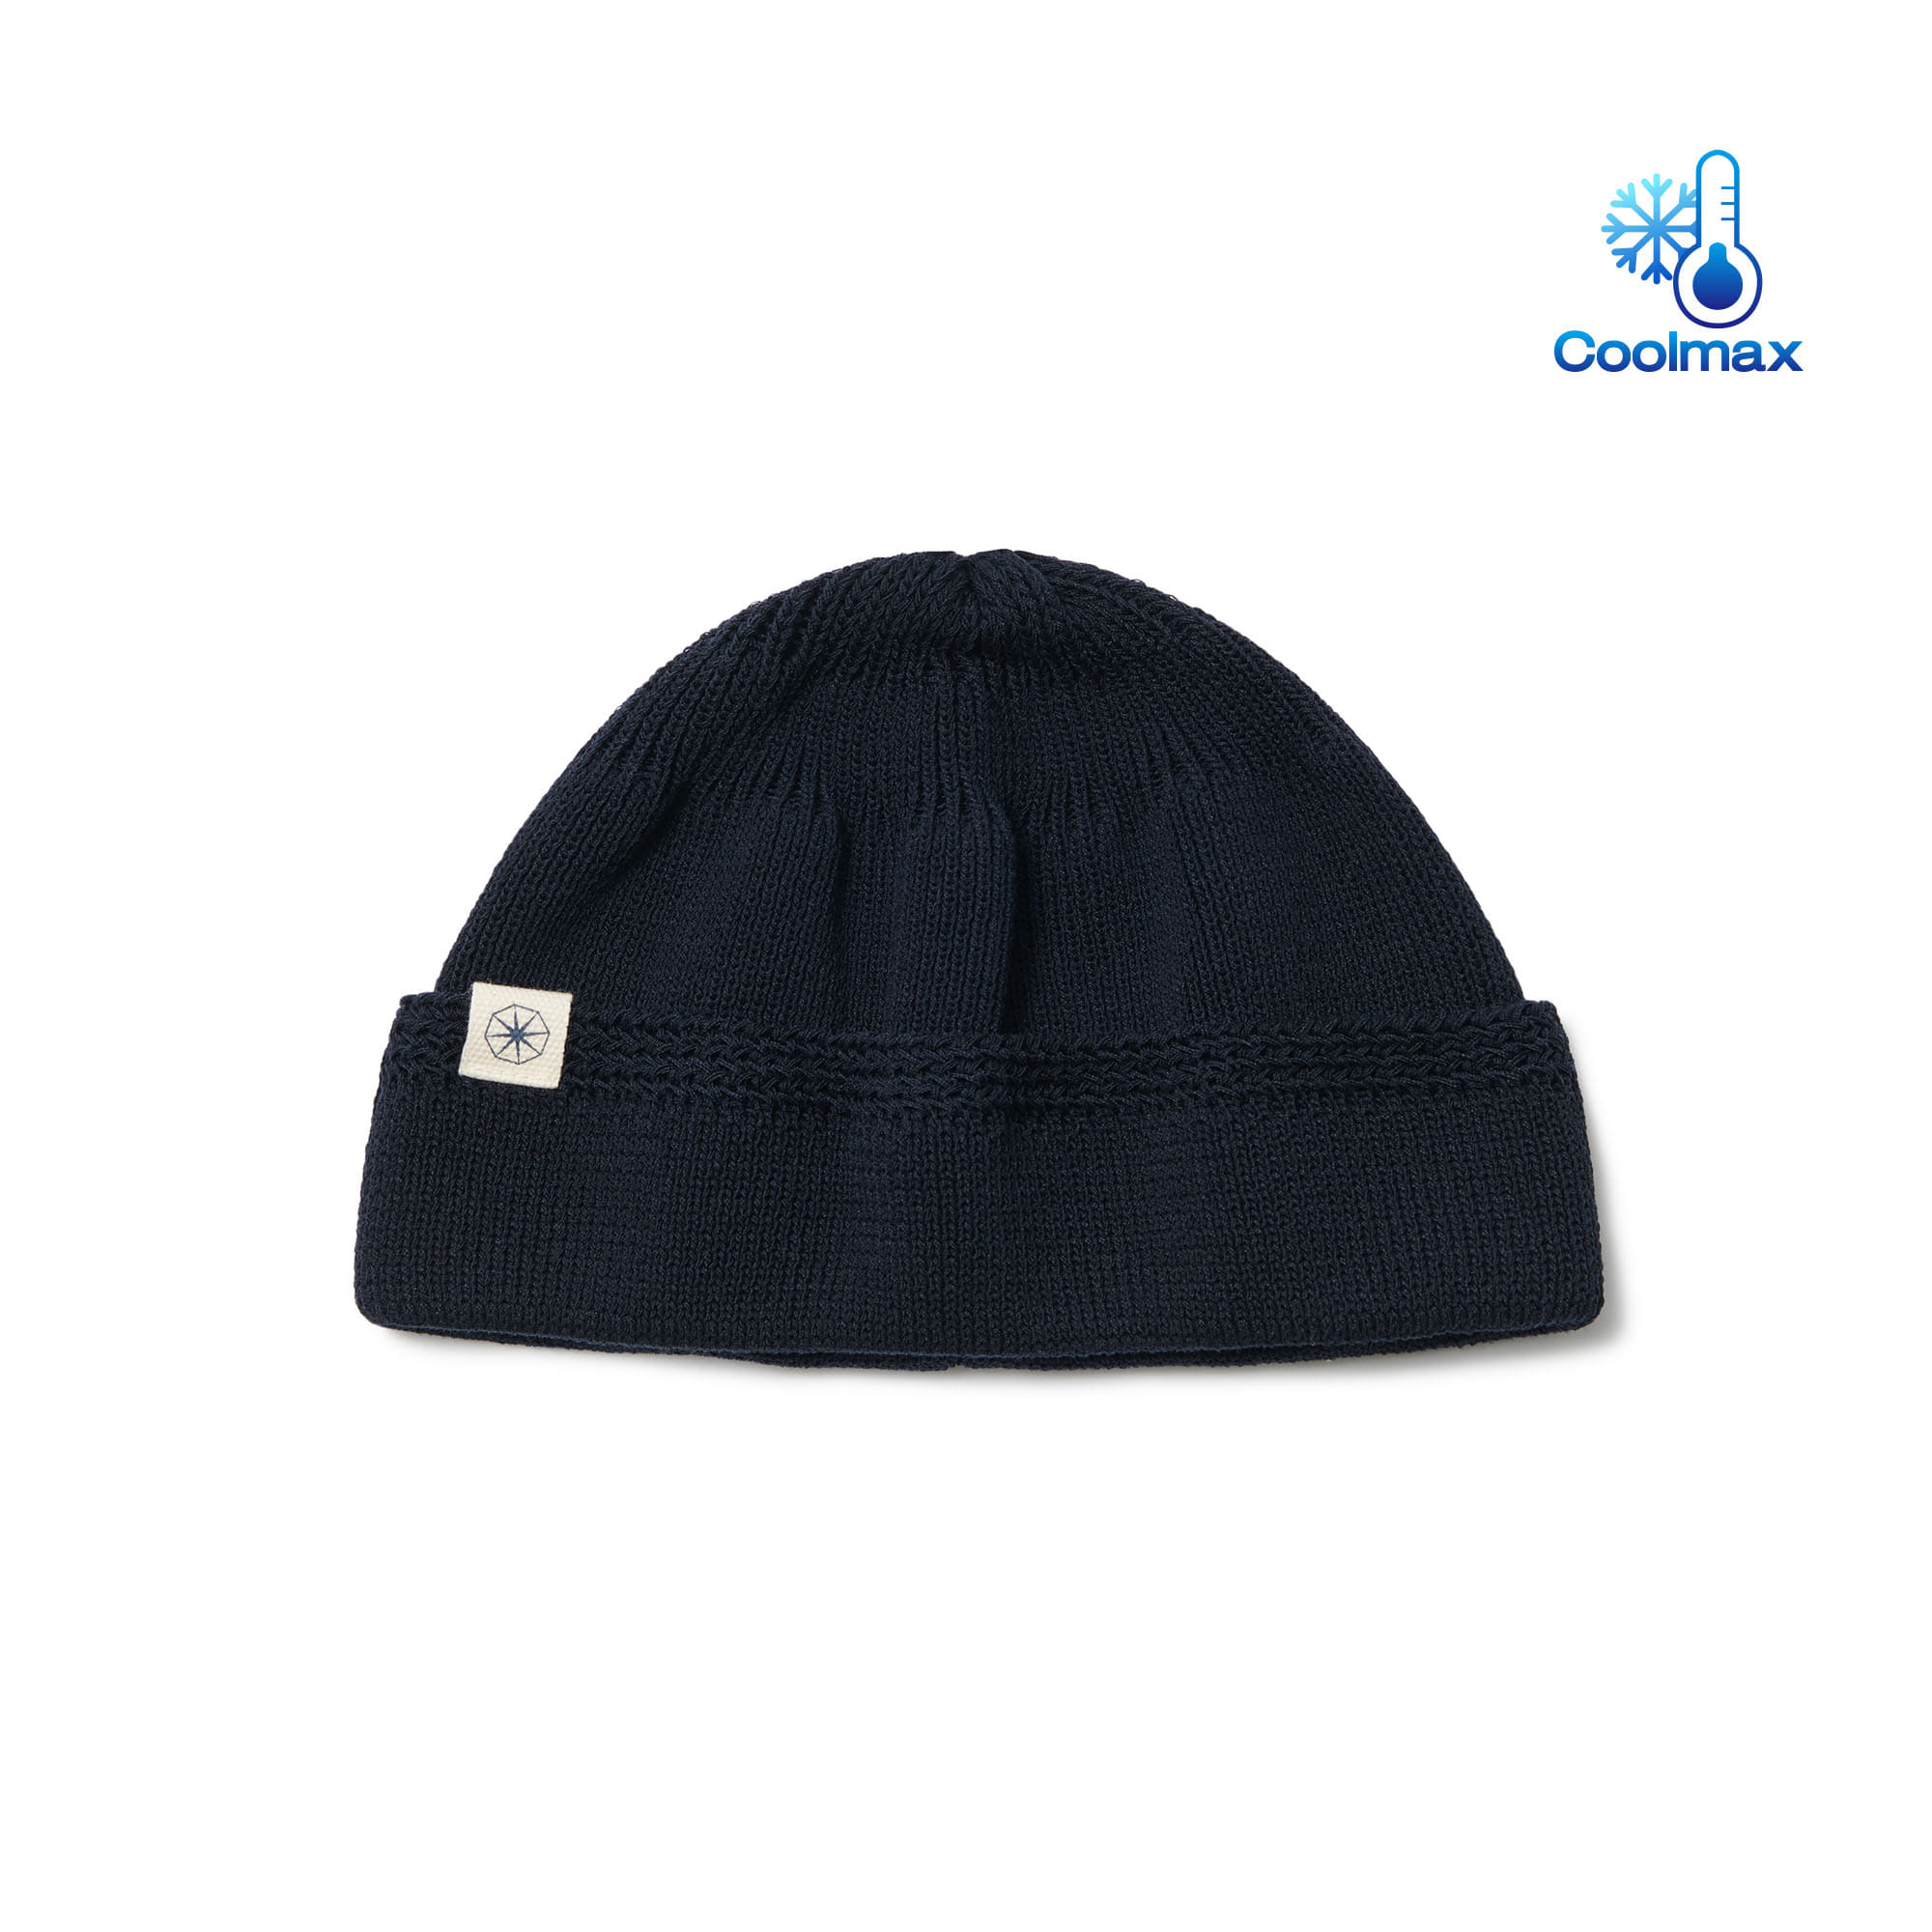 Coolmax Stickcap Vintage Navy